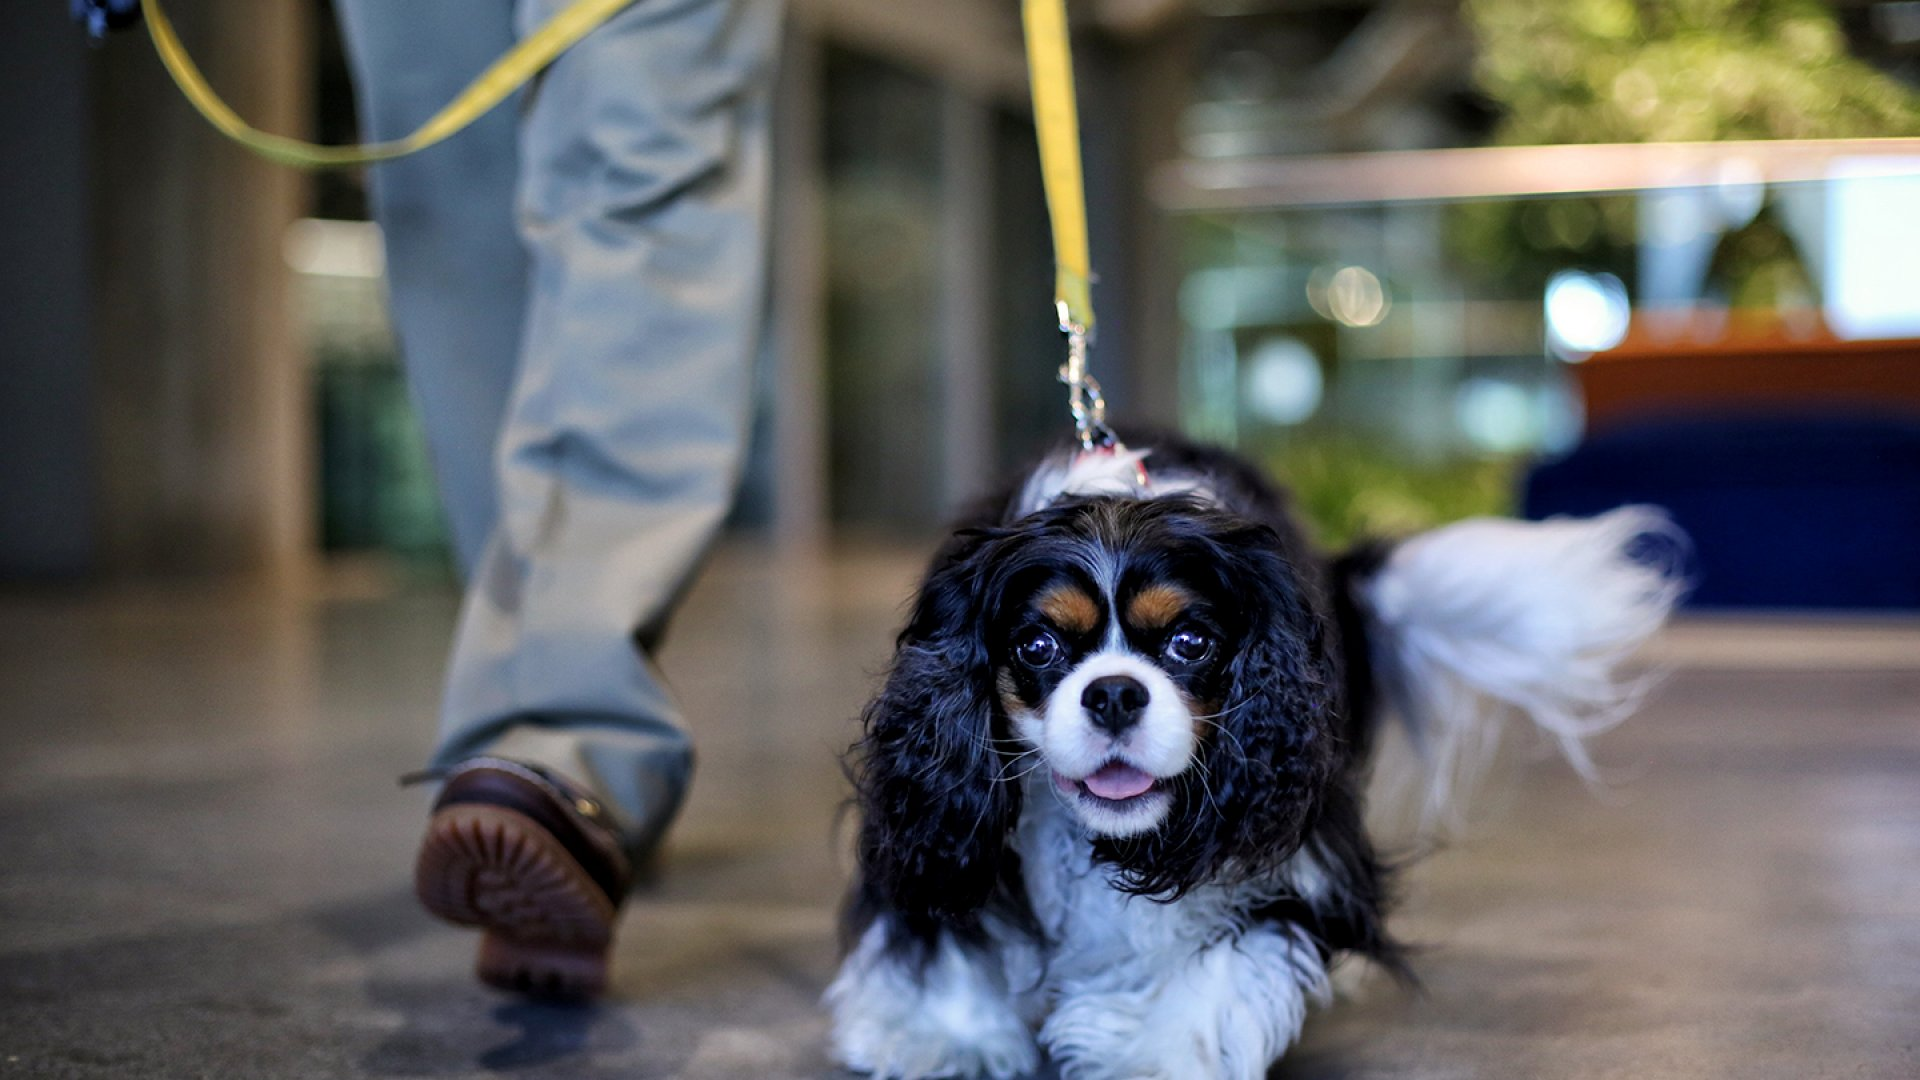 Pet-Friendly Workplaces Have Surprising Benefits for Employees